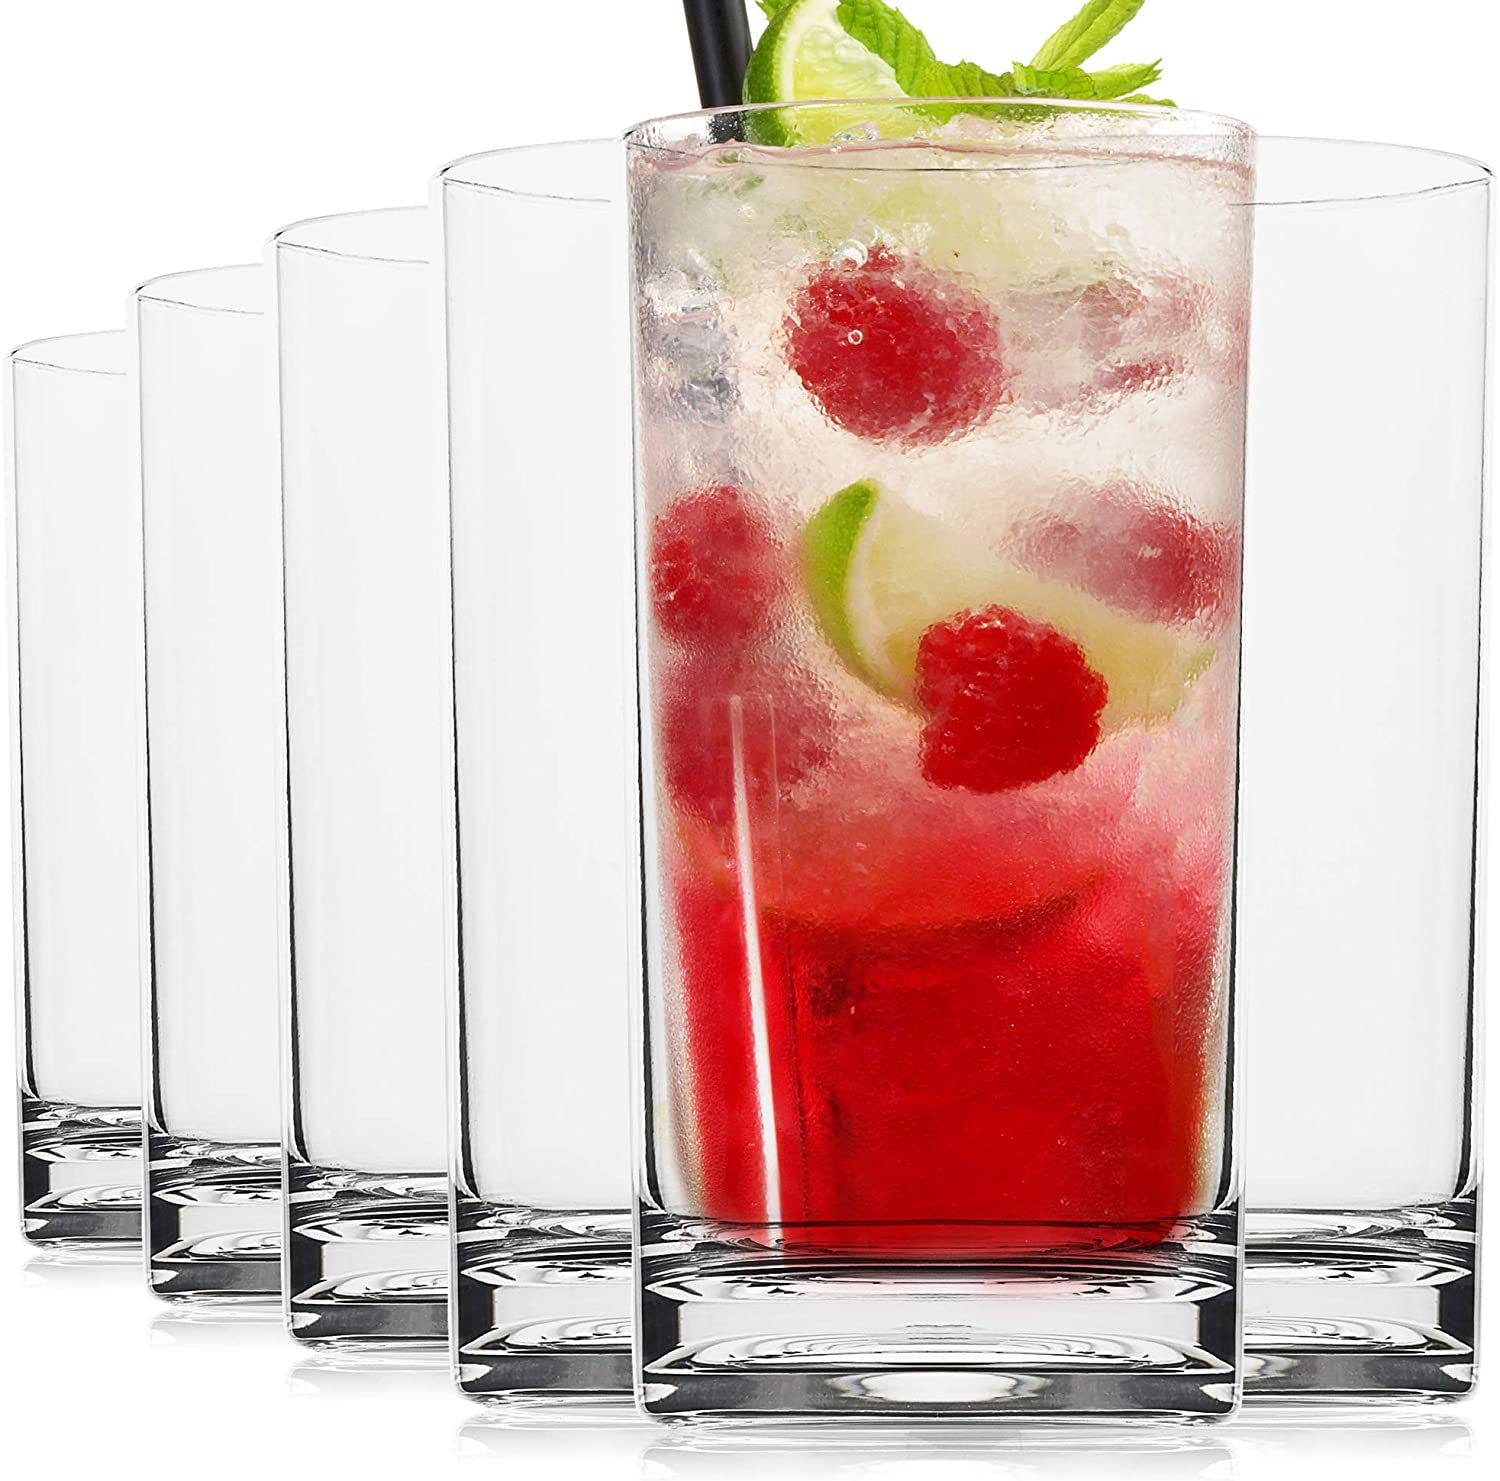 Vivocci Unbreakable Tritan Plastic Water Drinking Glasses 16 oz | Ideal for Juice Beverages & Cocktails | Shatterproof Barware | Highball Tall Clear Cup Tumblers | Dishwasher Safe Drinkware | Set of 6